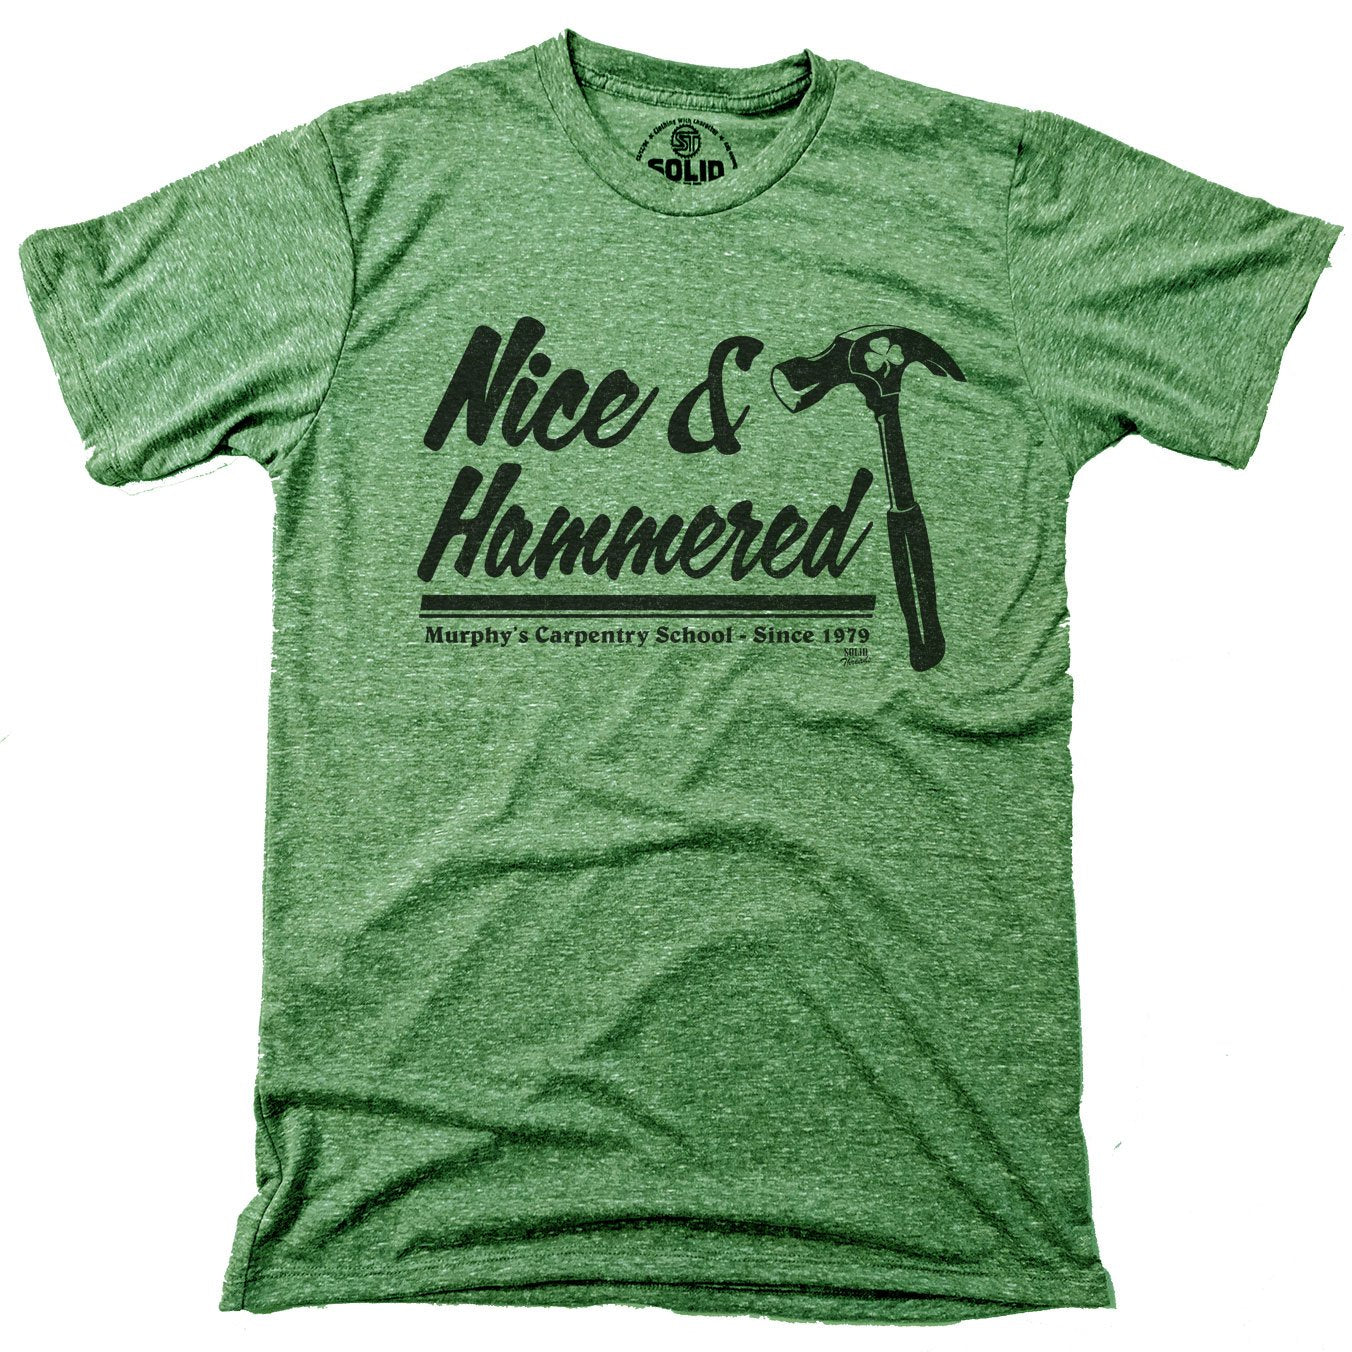 Nice & Hammered Vintage T-shirt | SOLID THREADS